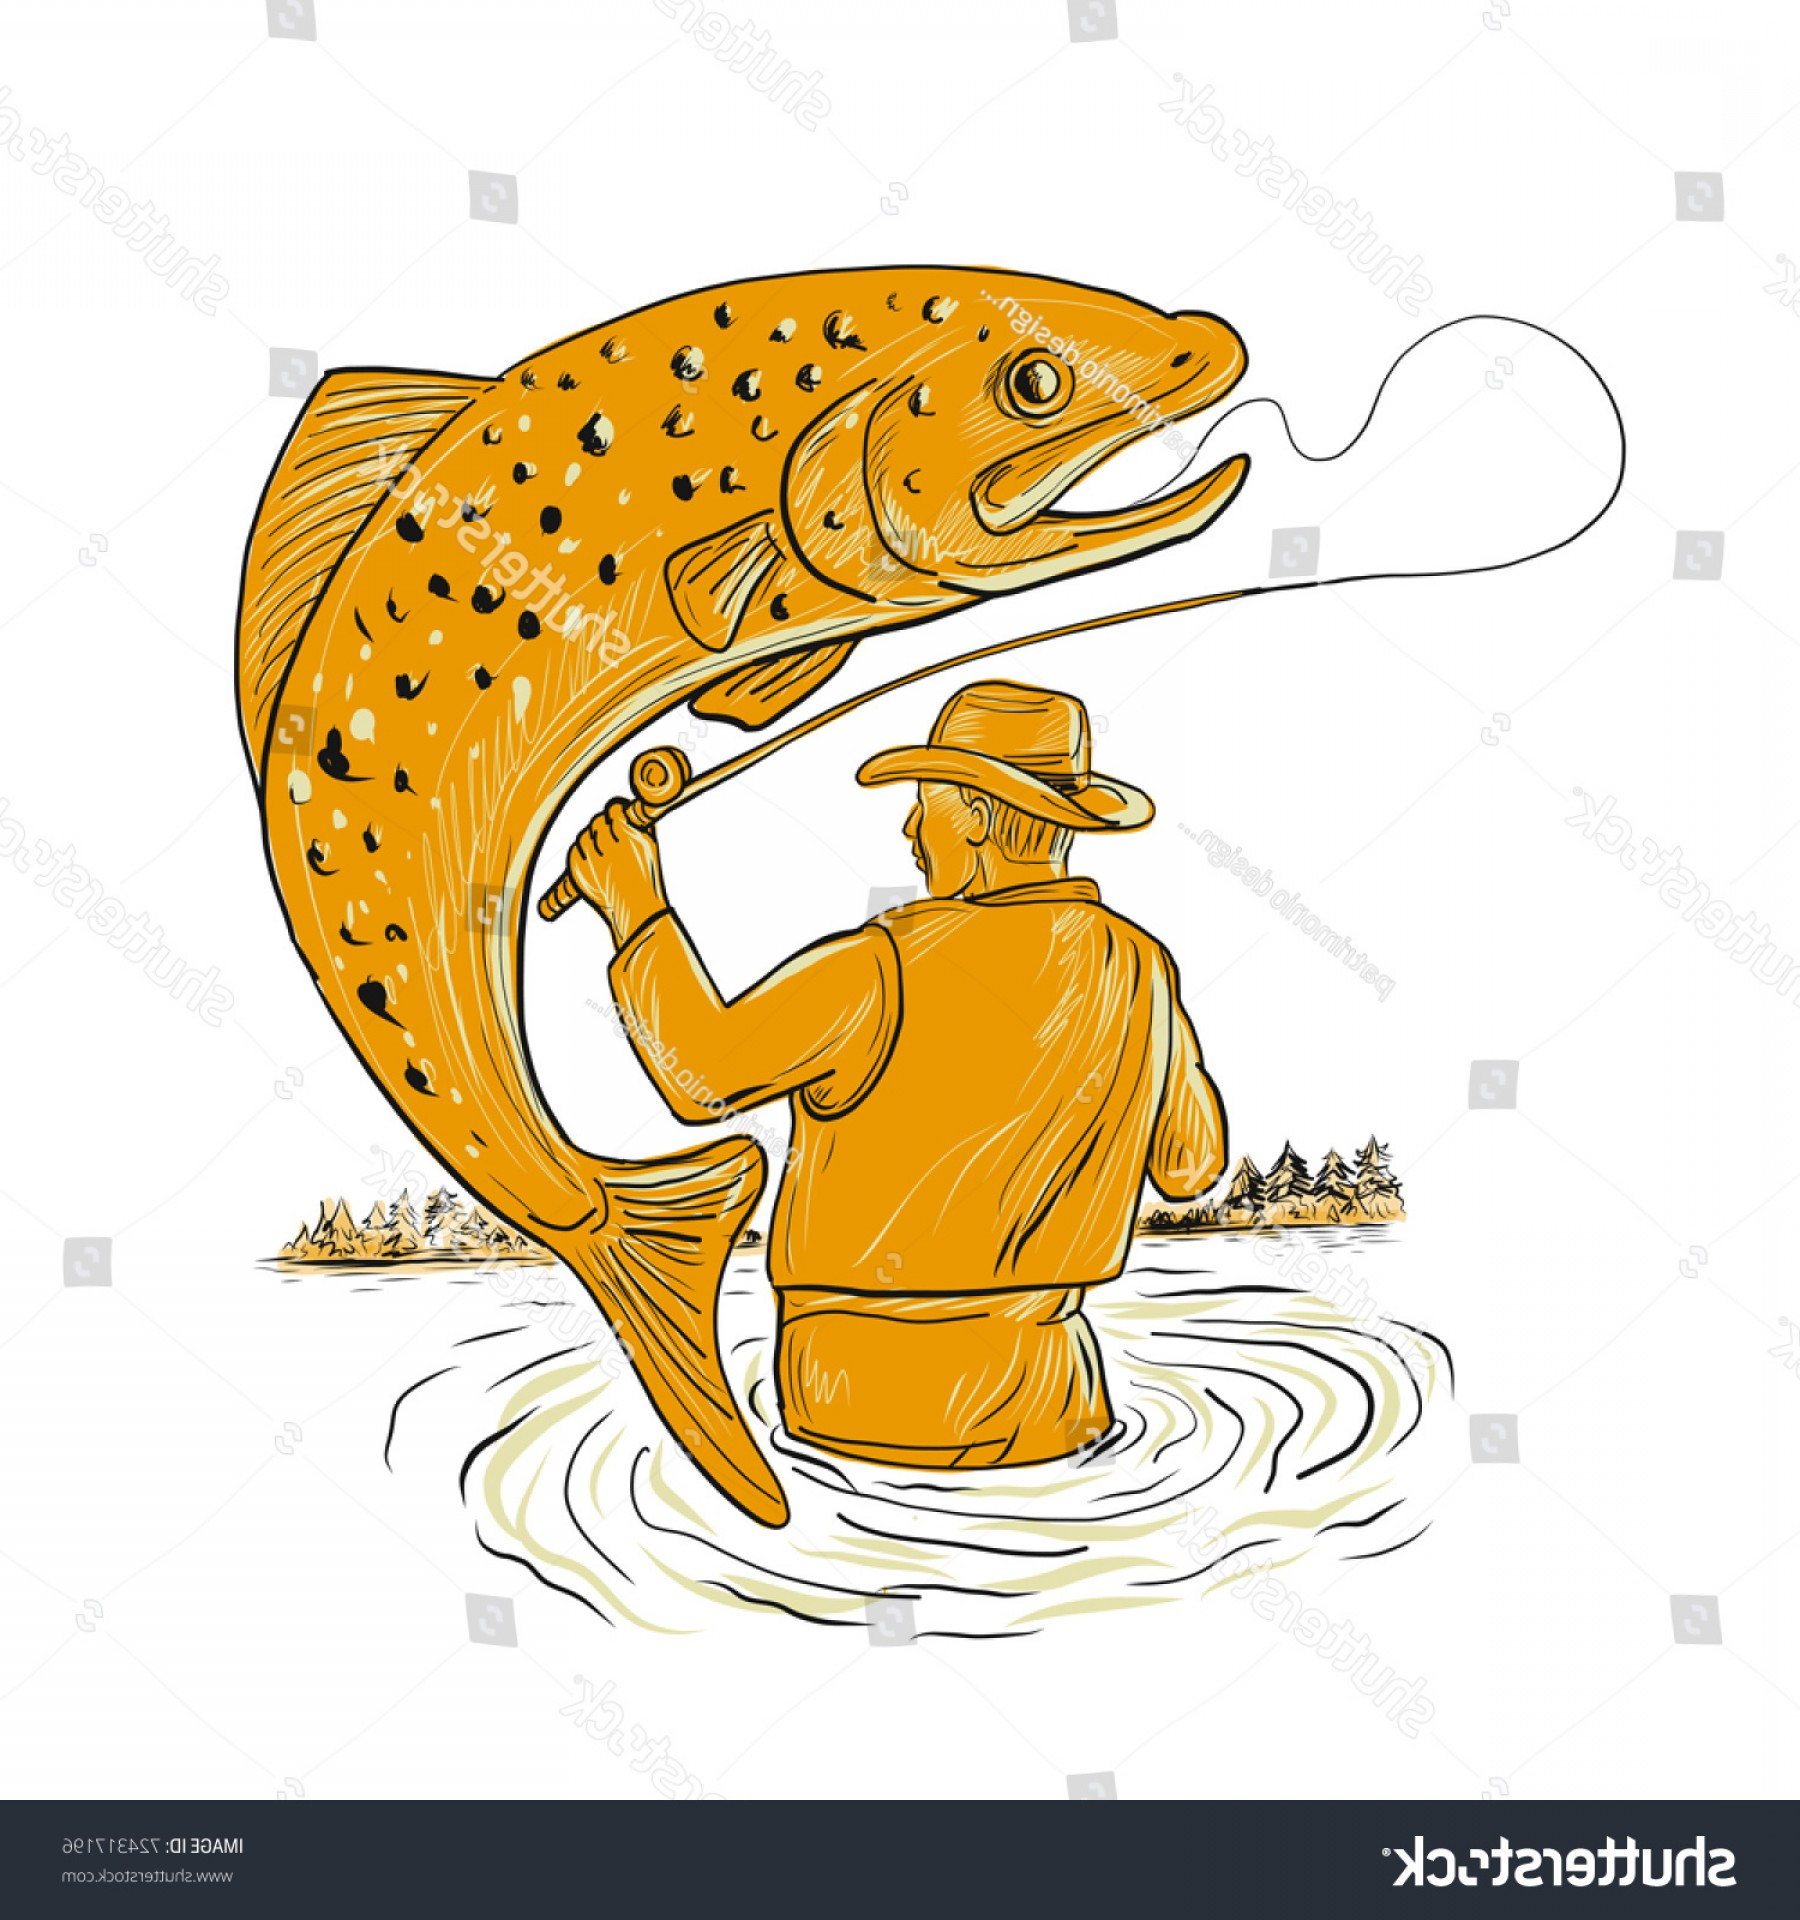 Detailed Vector Art Fly Fisherman: Drawing Sketch Style Illustration Fly Fisherman